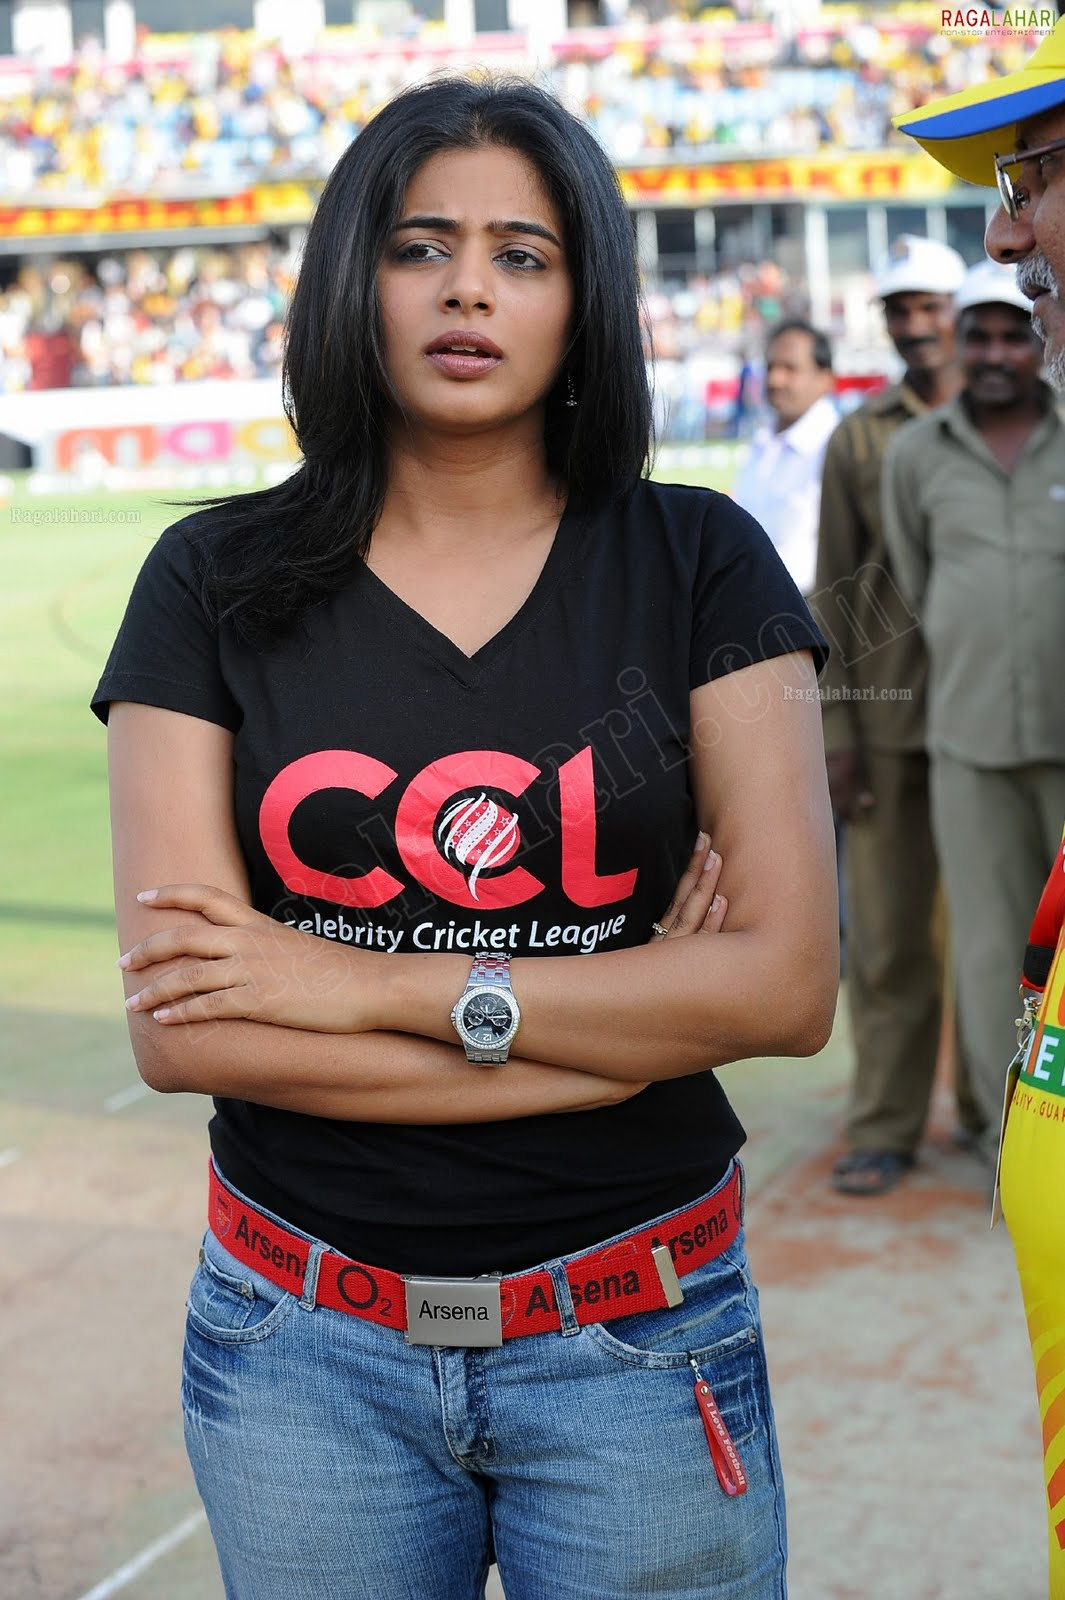 http://2.bp.blogspot.com/-pwRpbUhgGQk/TfoL9InlcAI/AAAAAAAAISw/hs3OB0OkwY0/s1600/priyamani-high-resolution-celebrity-cricket-league4-0015_indian%2Bmasala_01indianmasala.blogspot.com.jpg